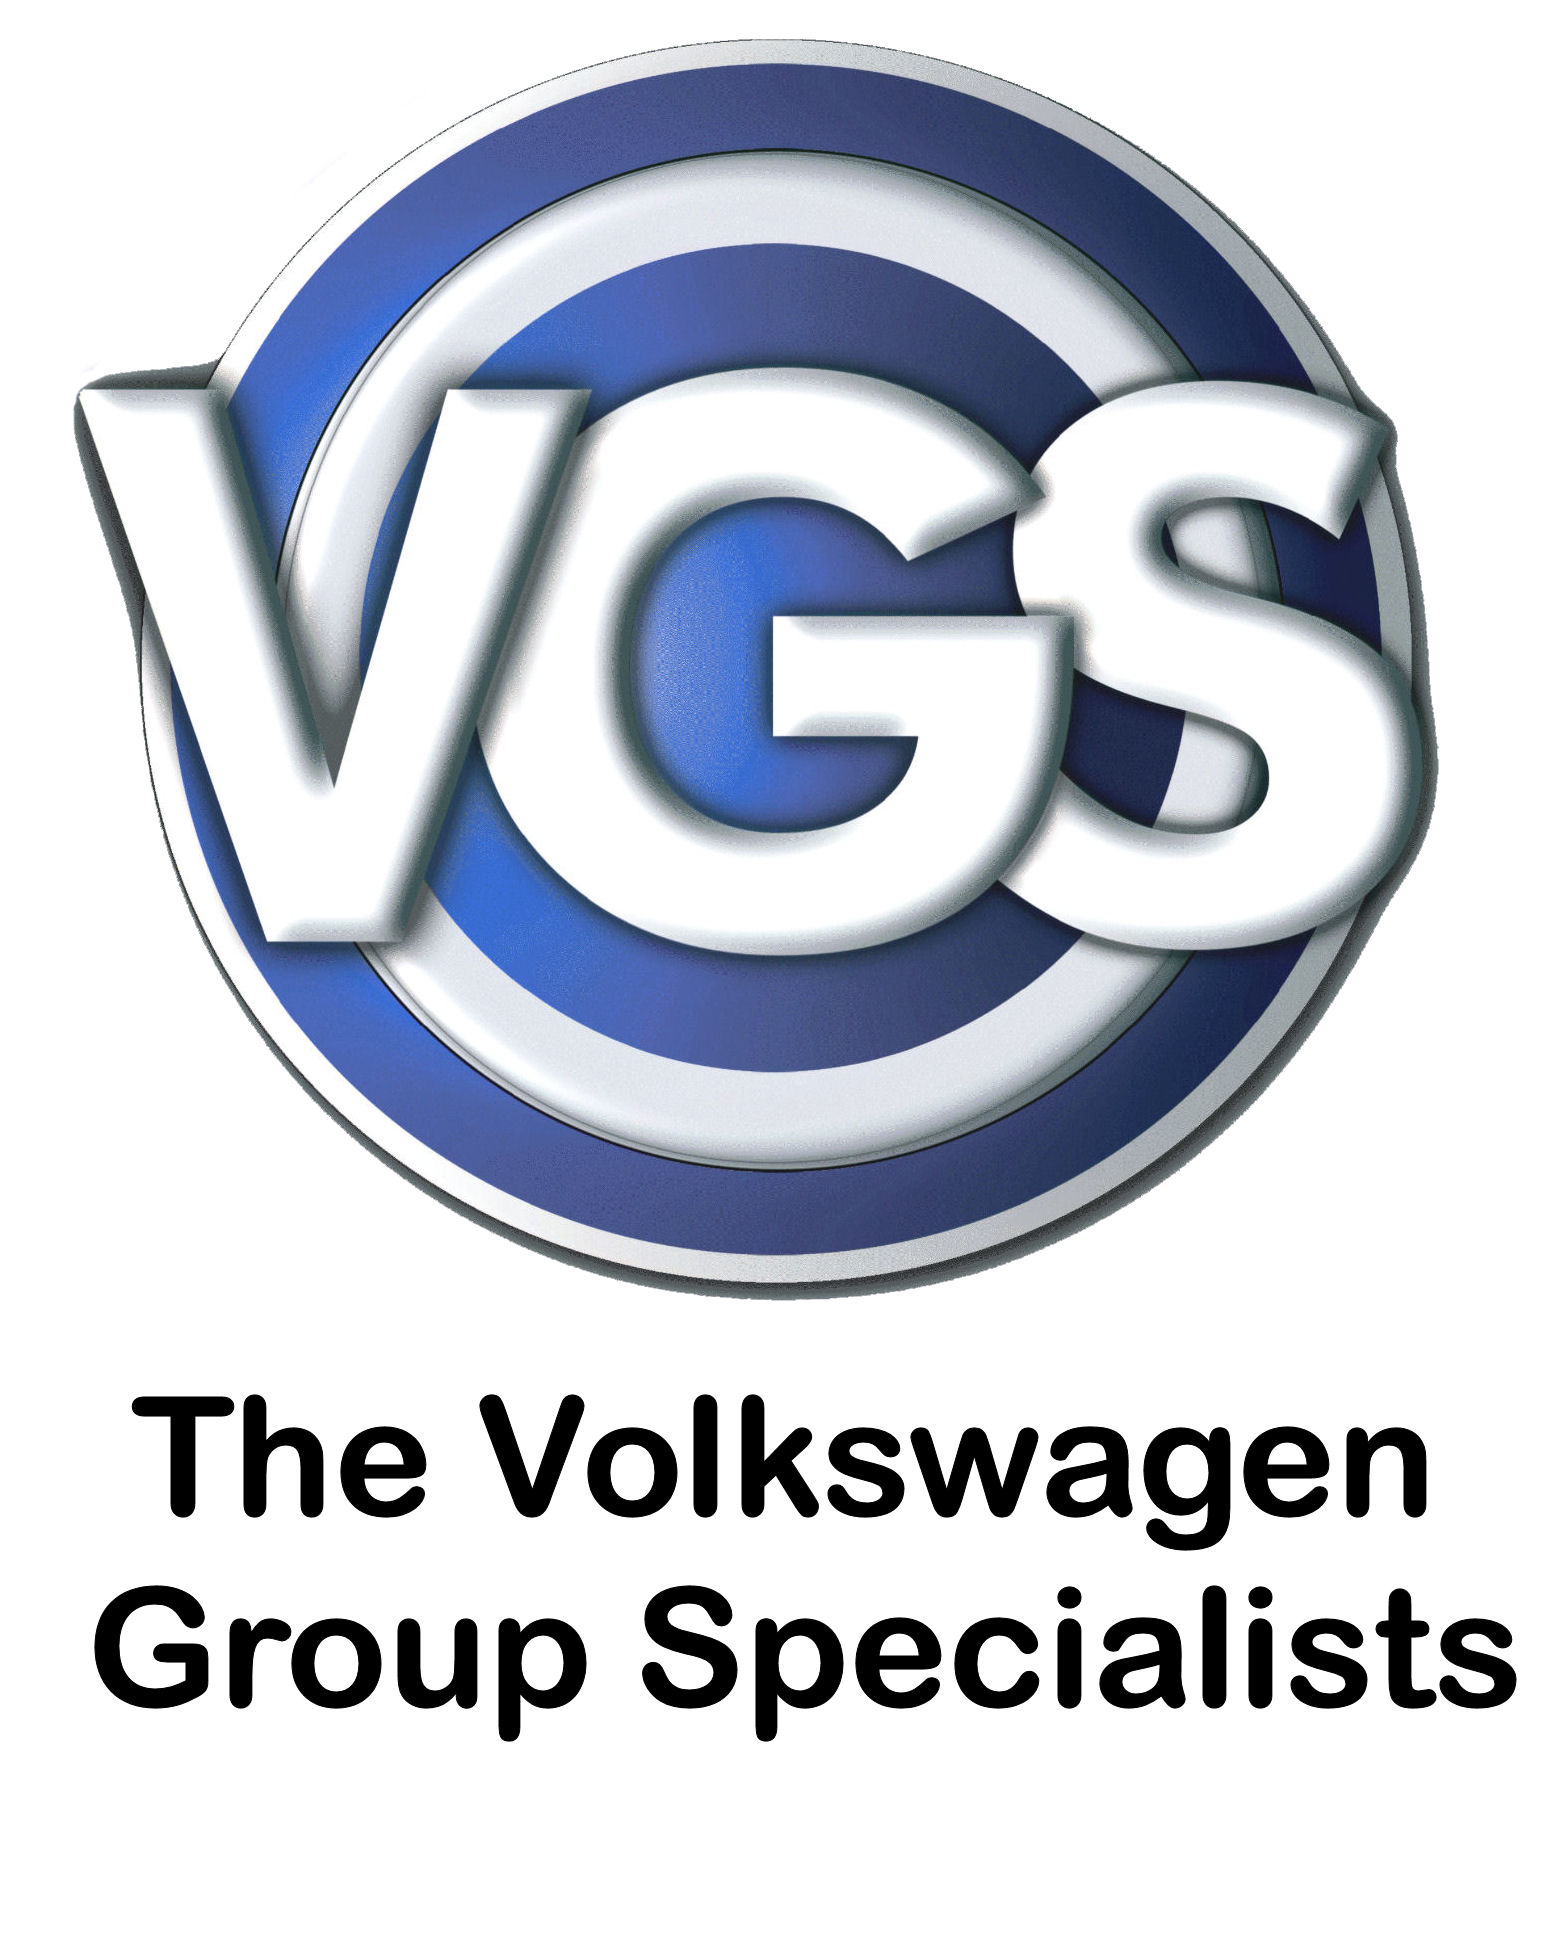 Volkswagen Group Specialists logo